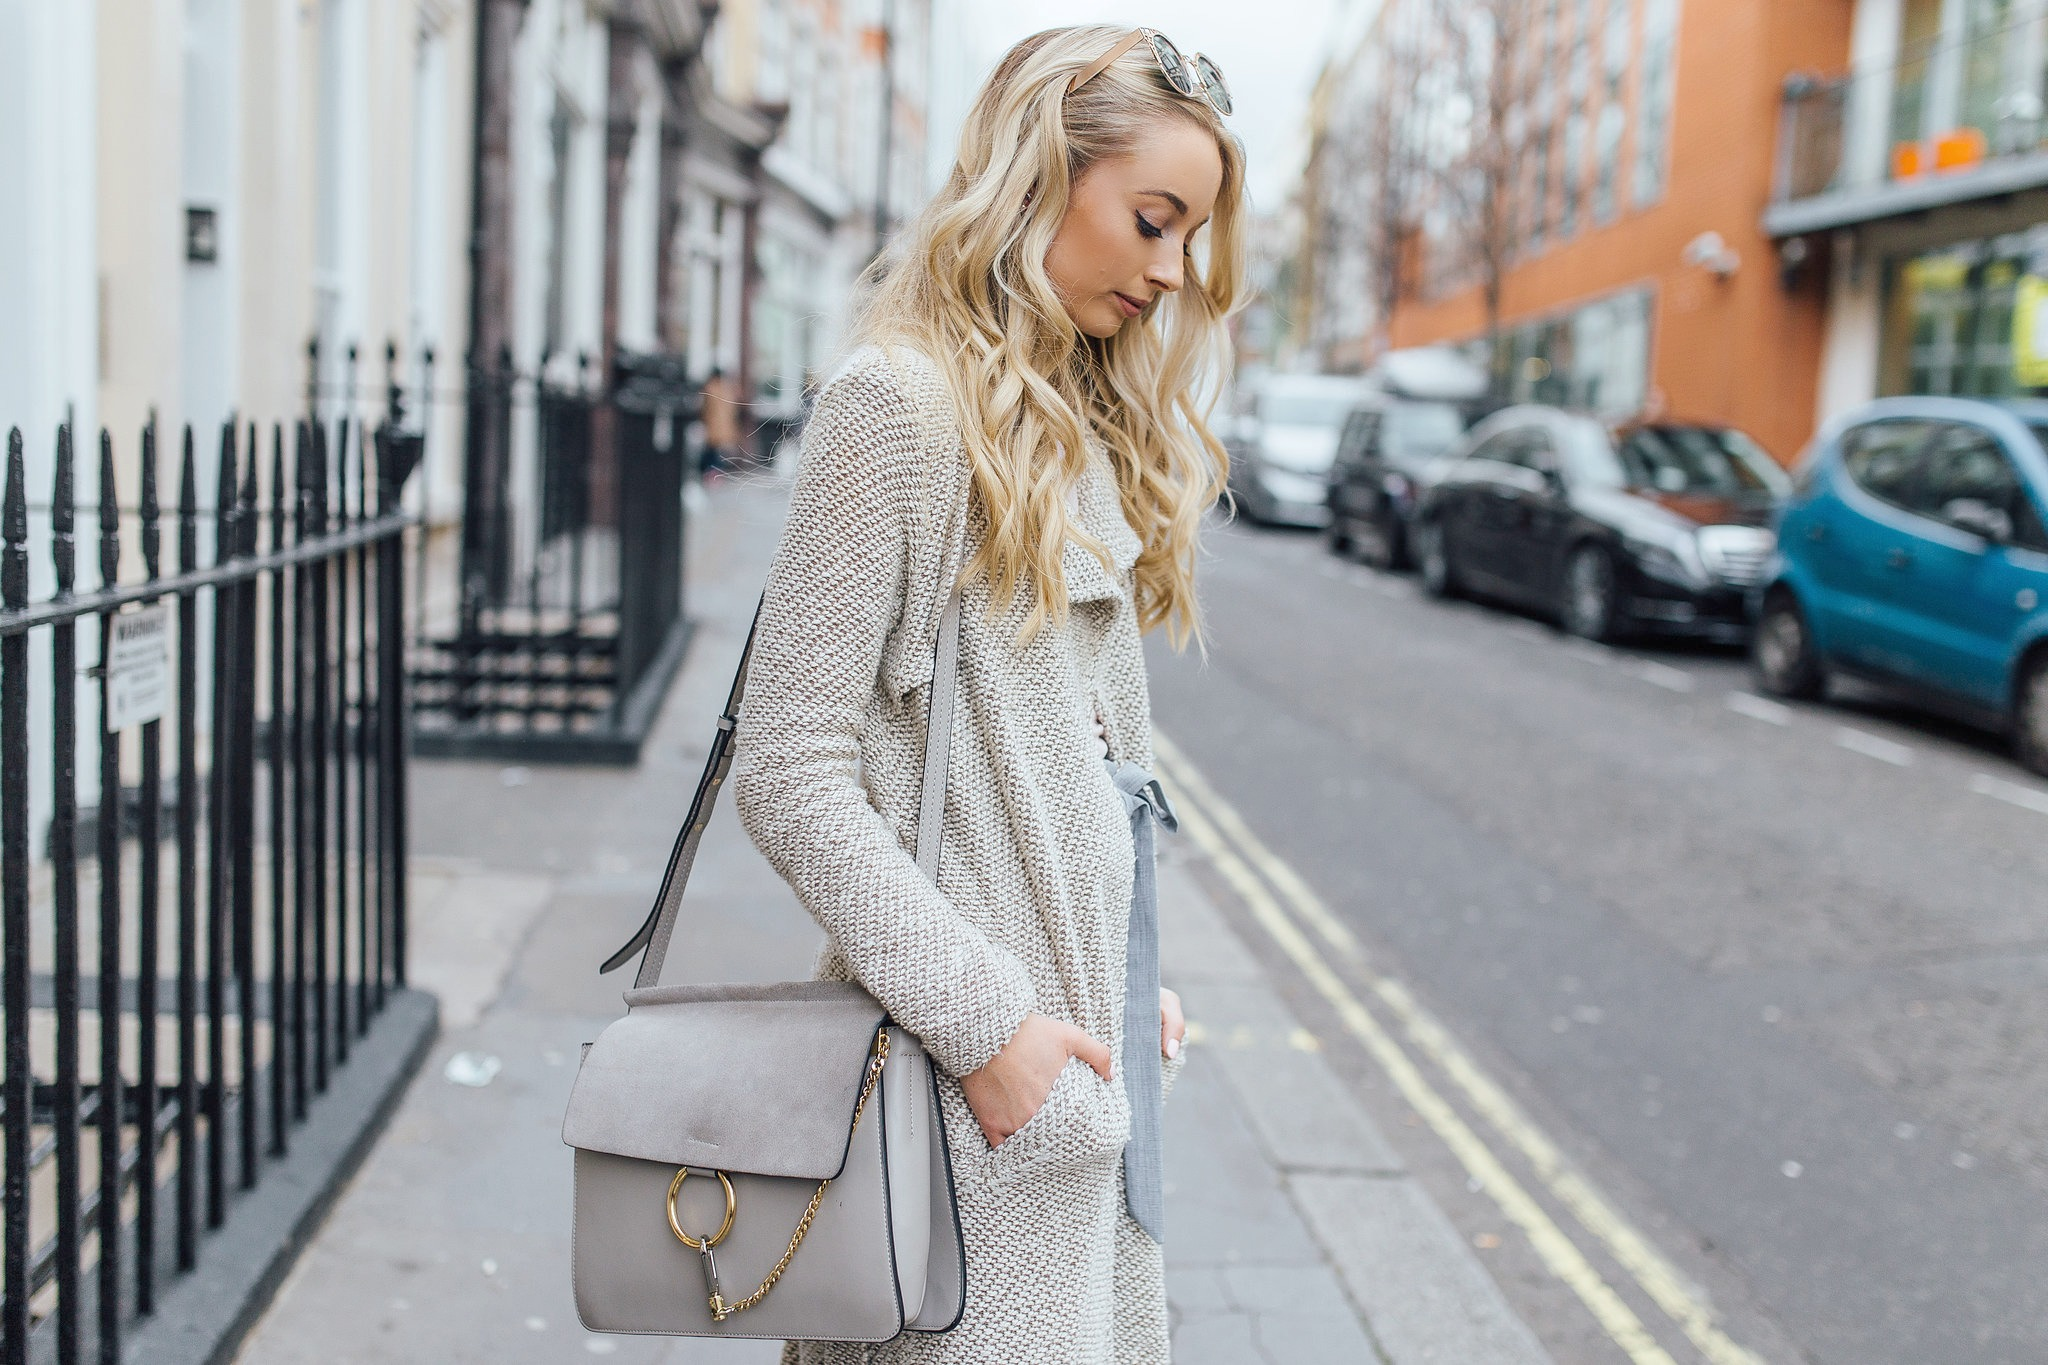 London Fashion Week Day One #ootd fashion mumblr